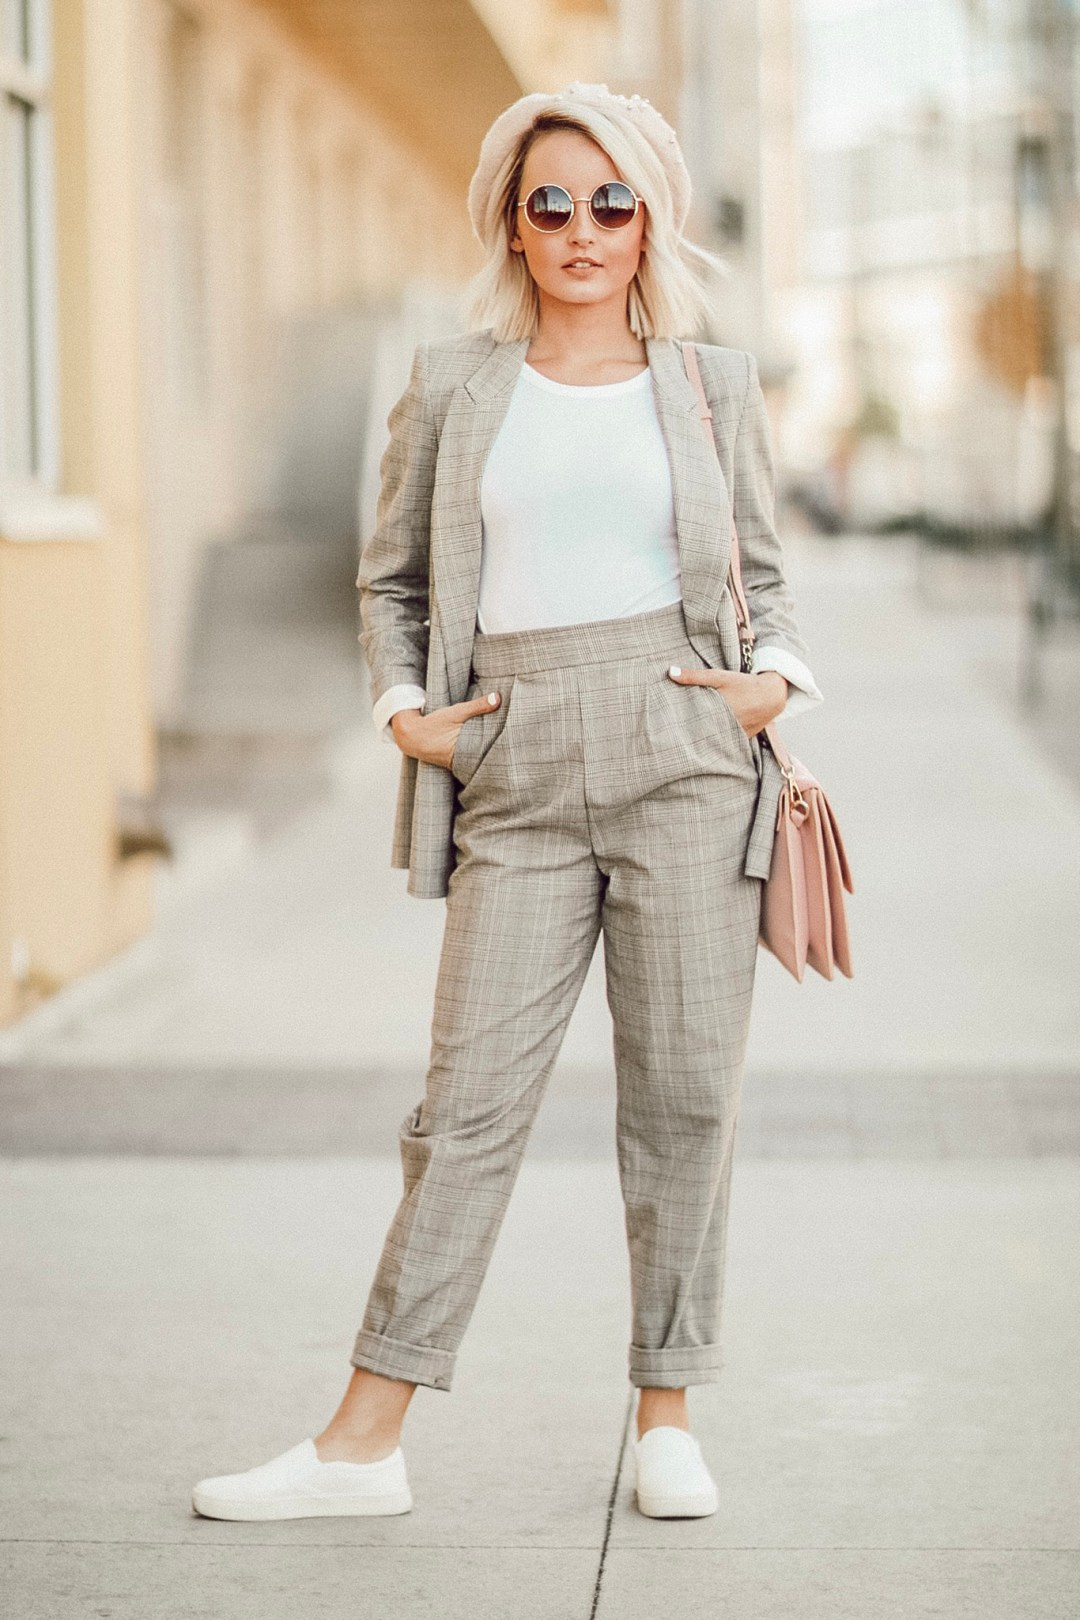 Alena Gidenko of modaprints.com shares tips on how to style down a suit for women